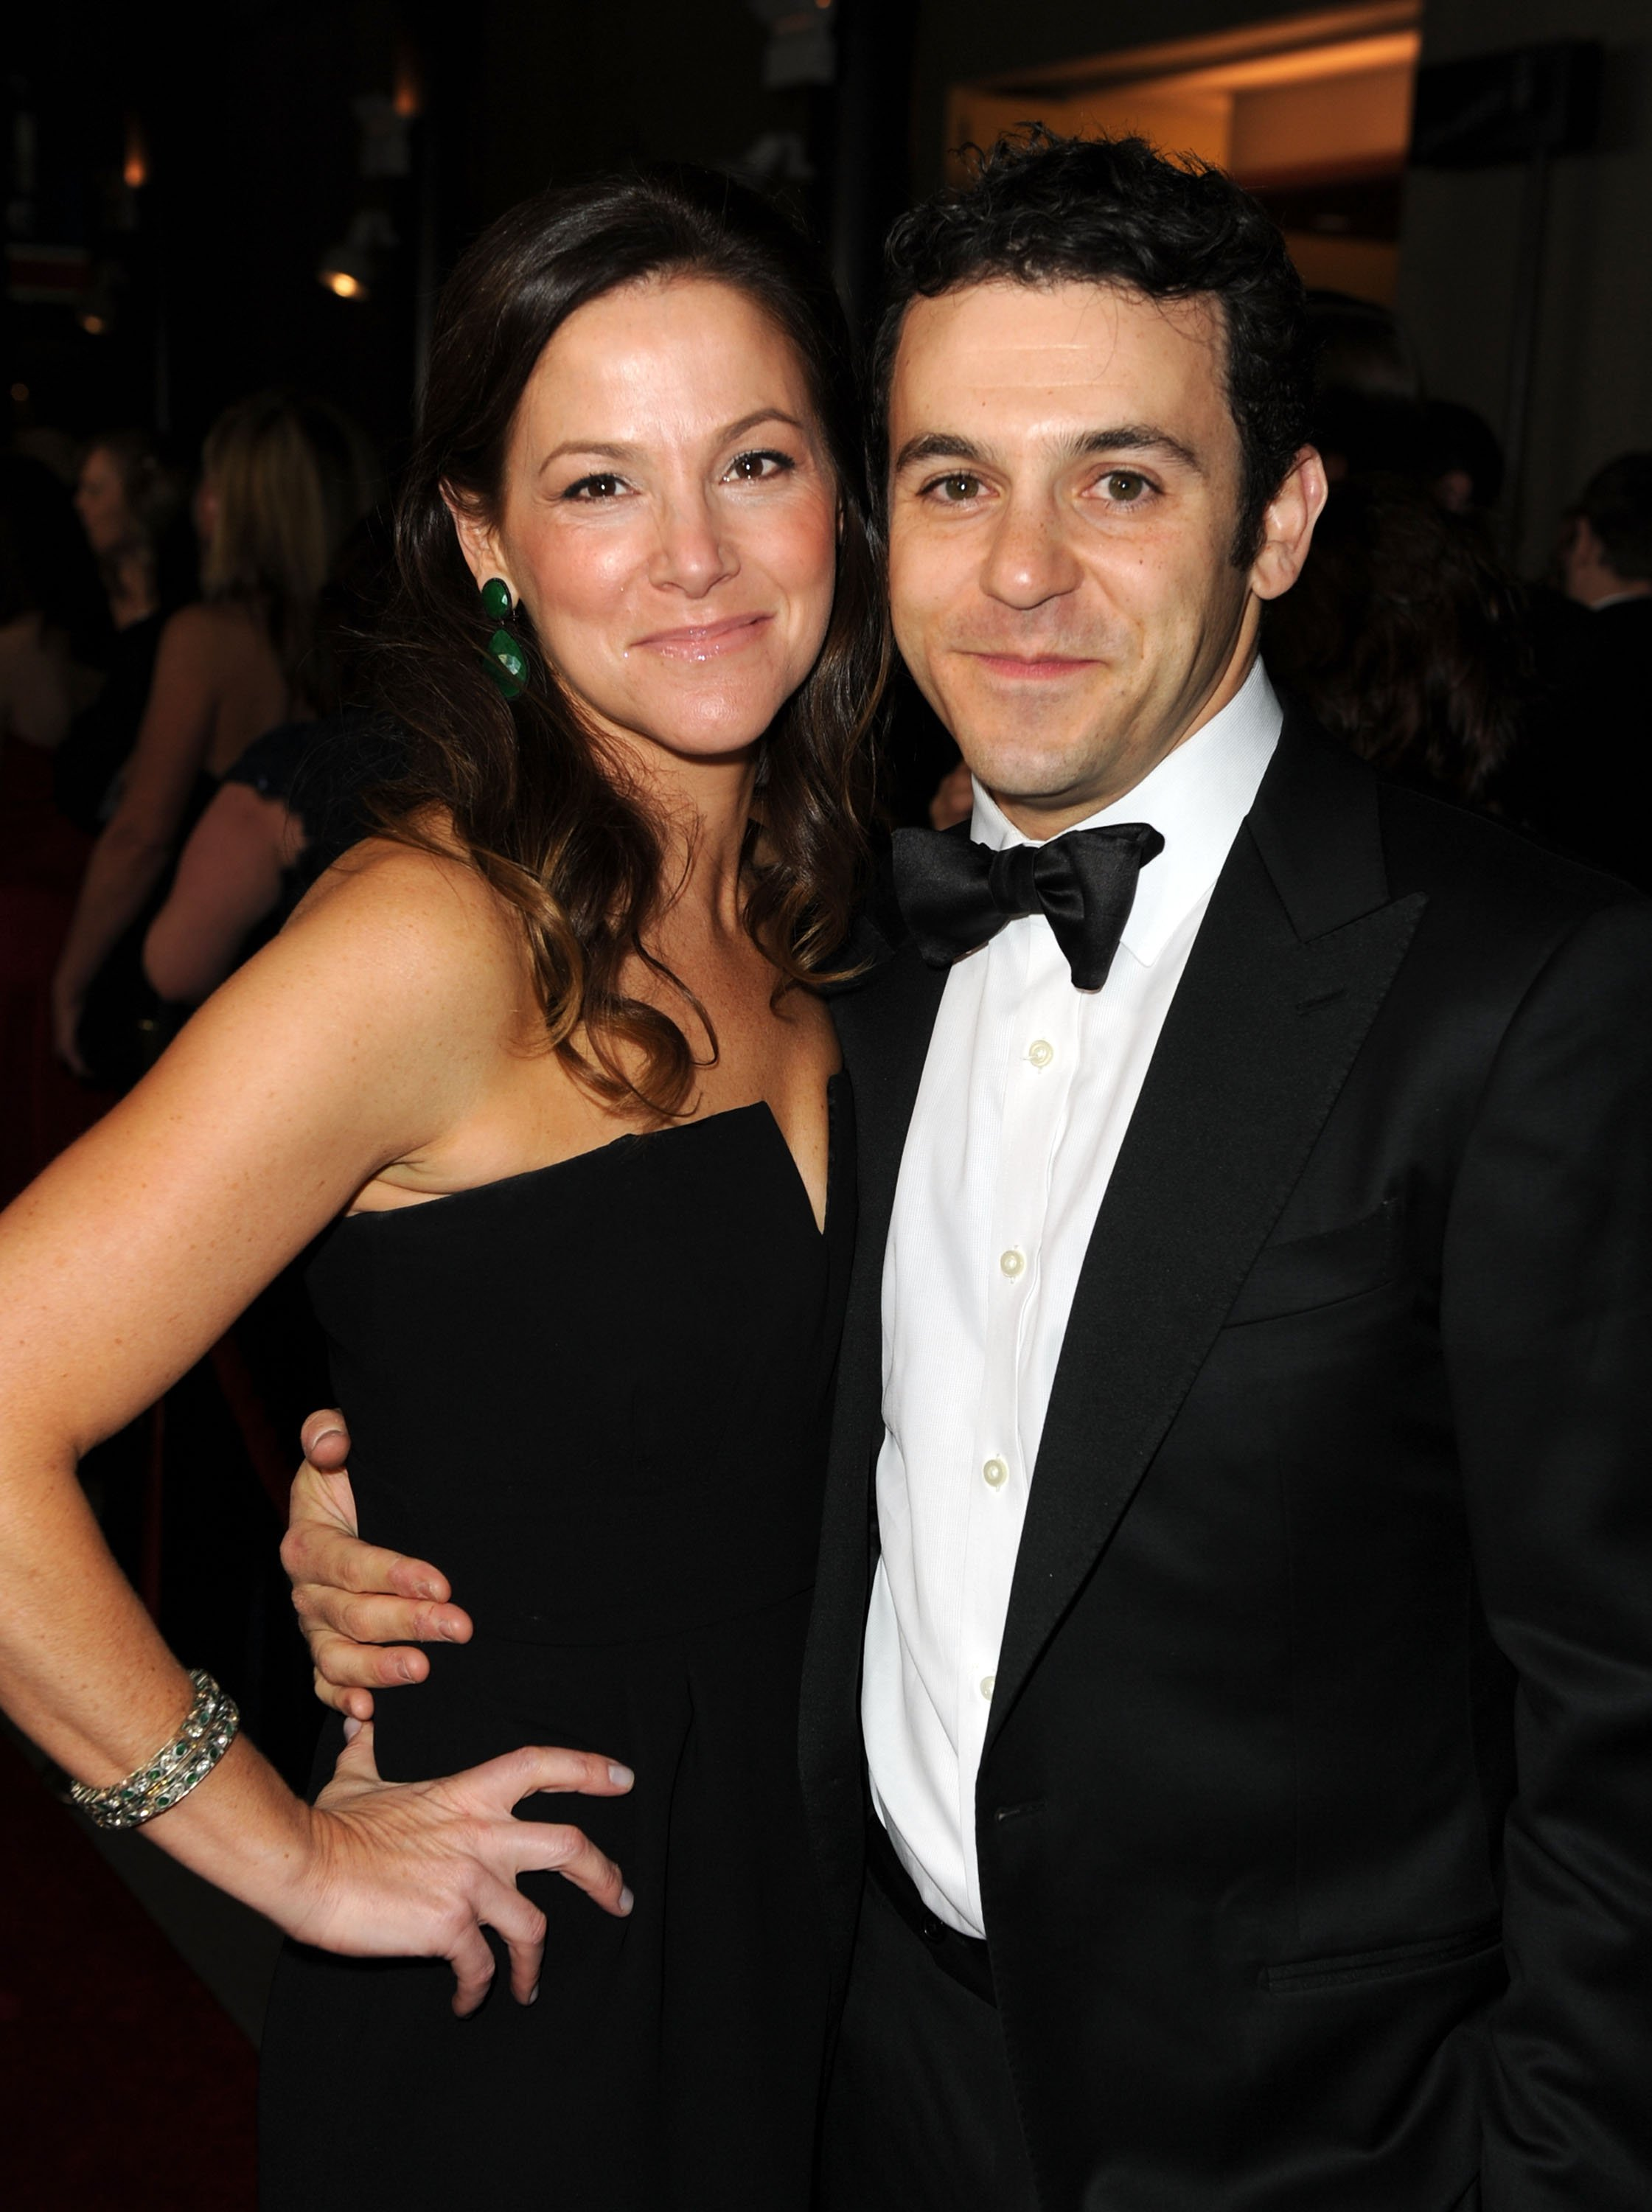 Fred Savage and wife Jennifer Lynn Stone on January 28, 2012 in Hollywood, California | Source: Getty Images